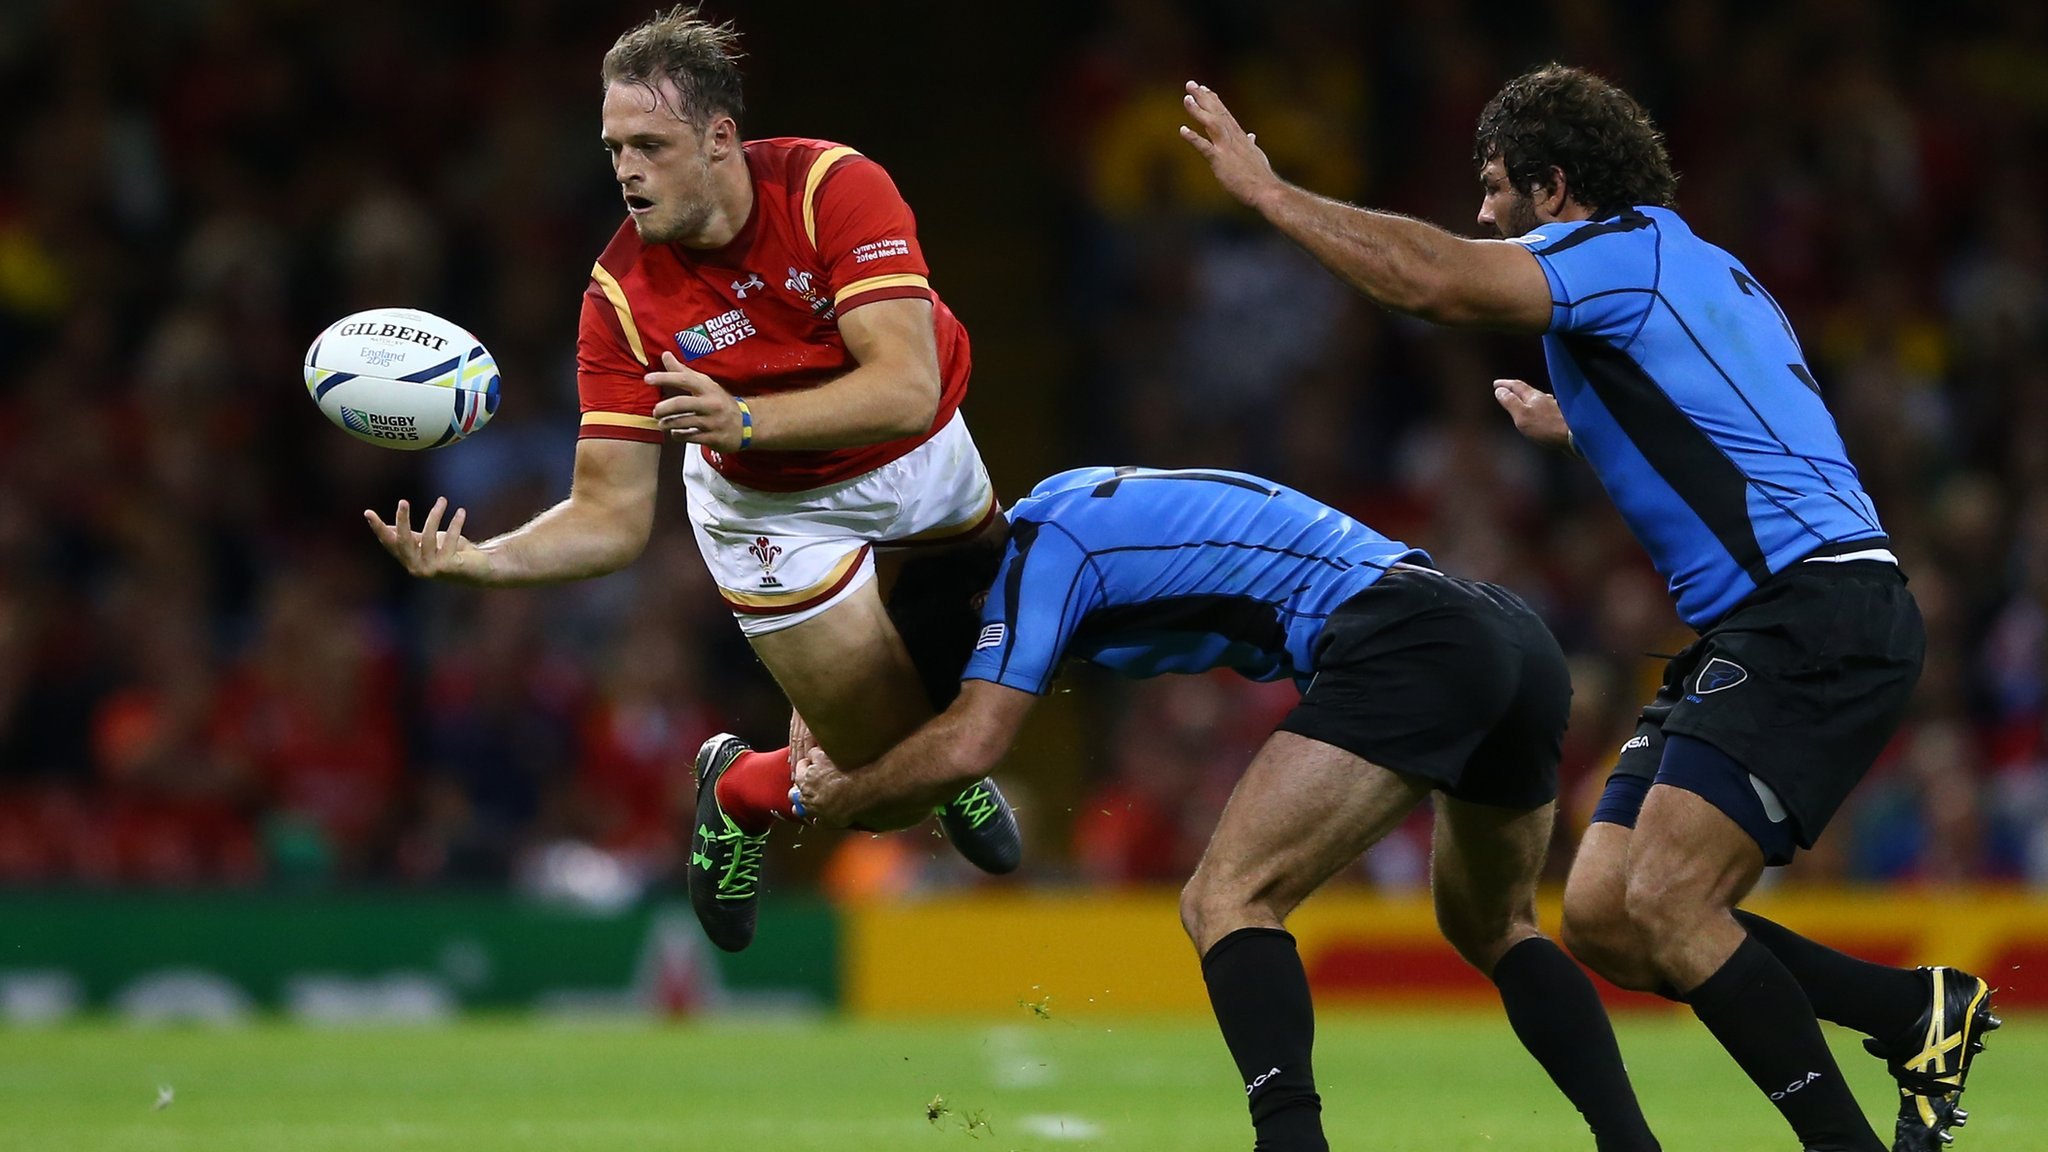 BBC Wales to show Cardiff Blues v Uruguay tour match in November